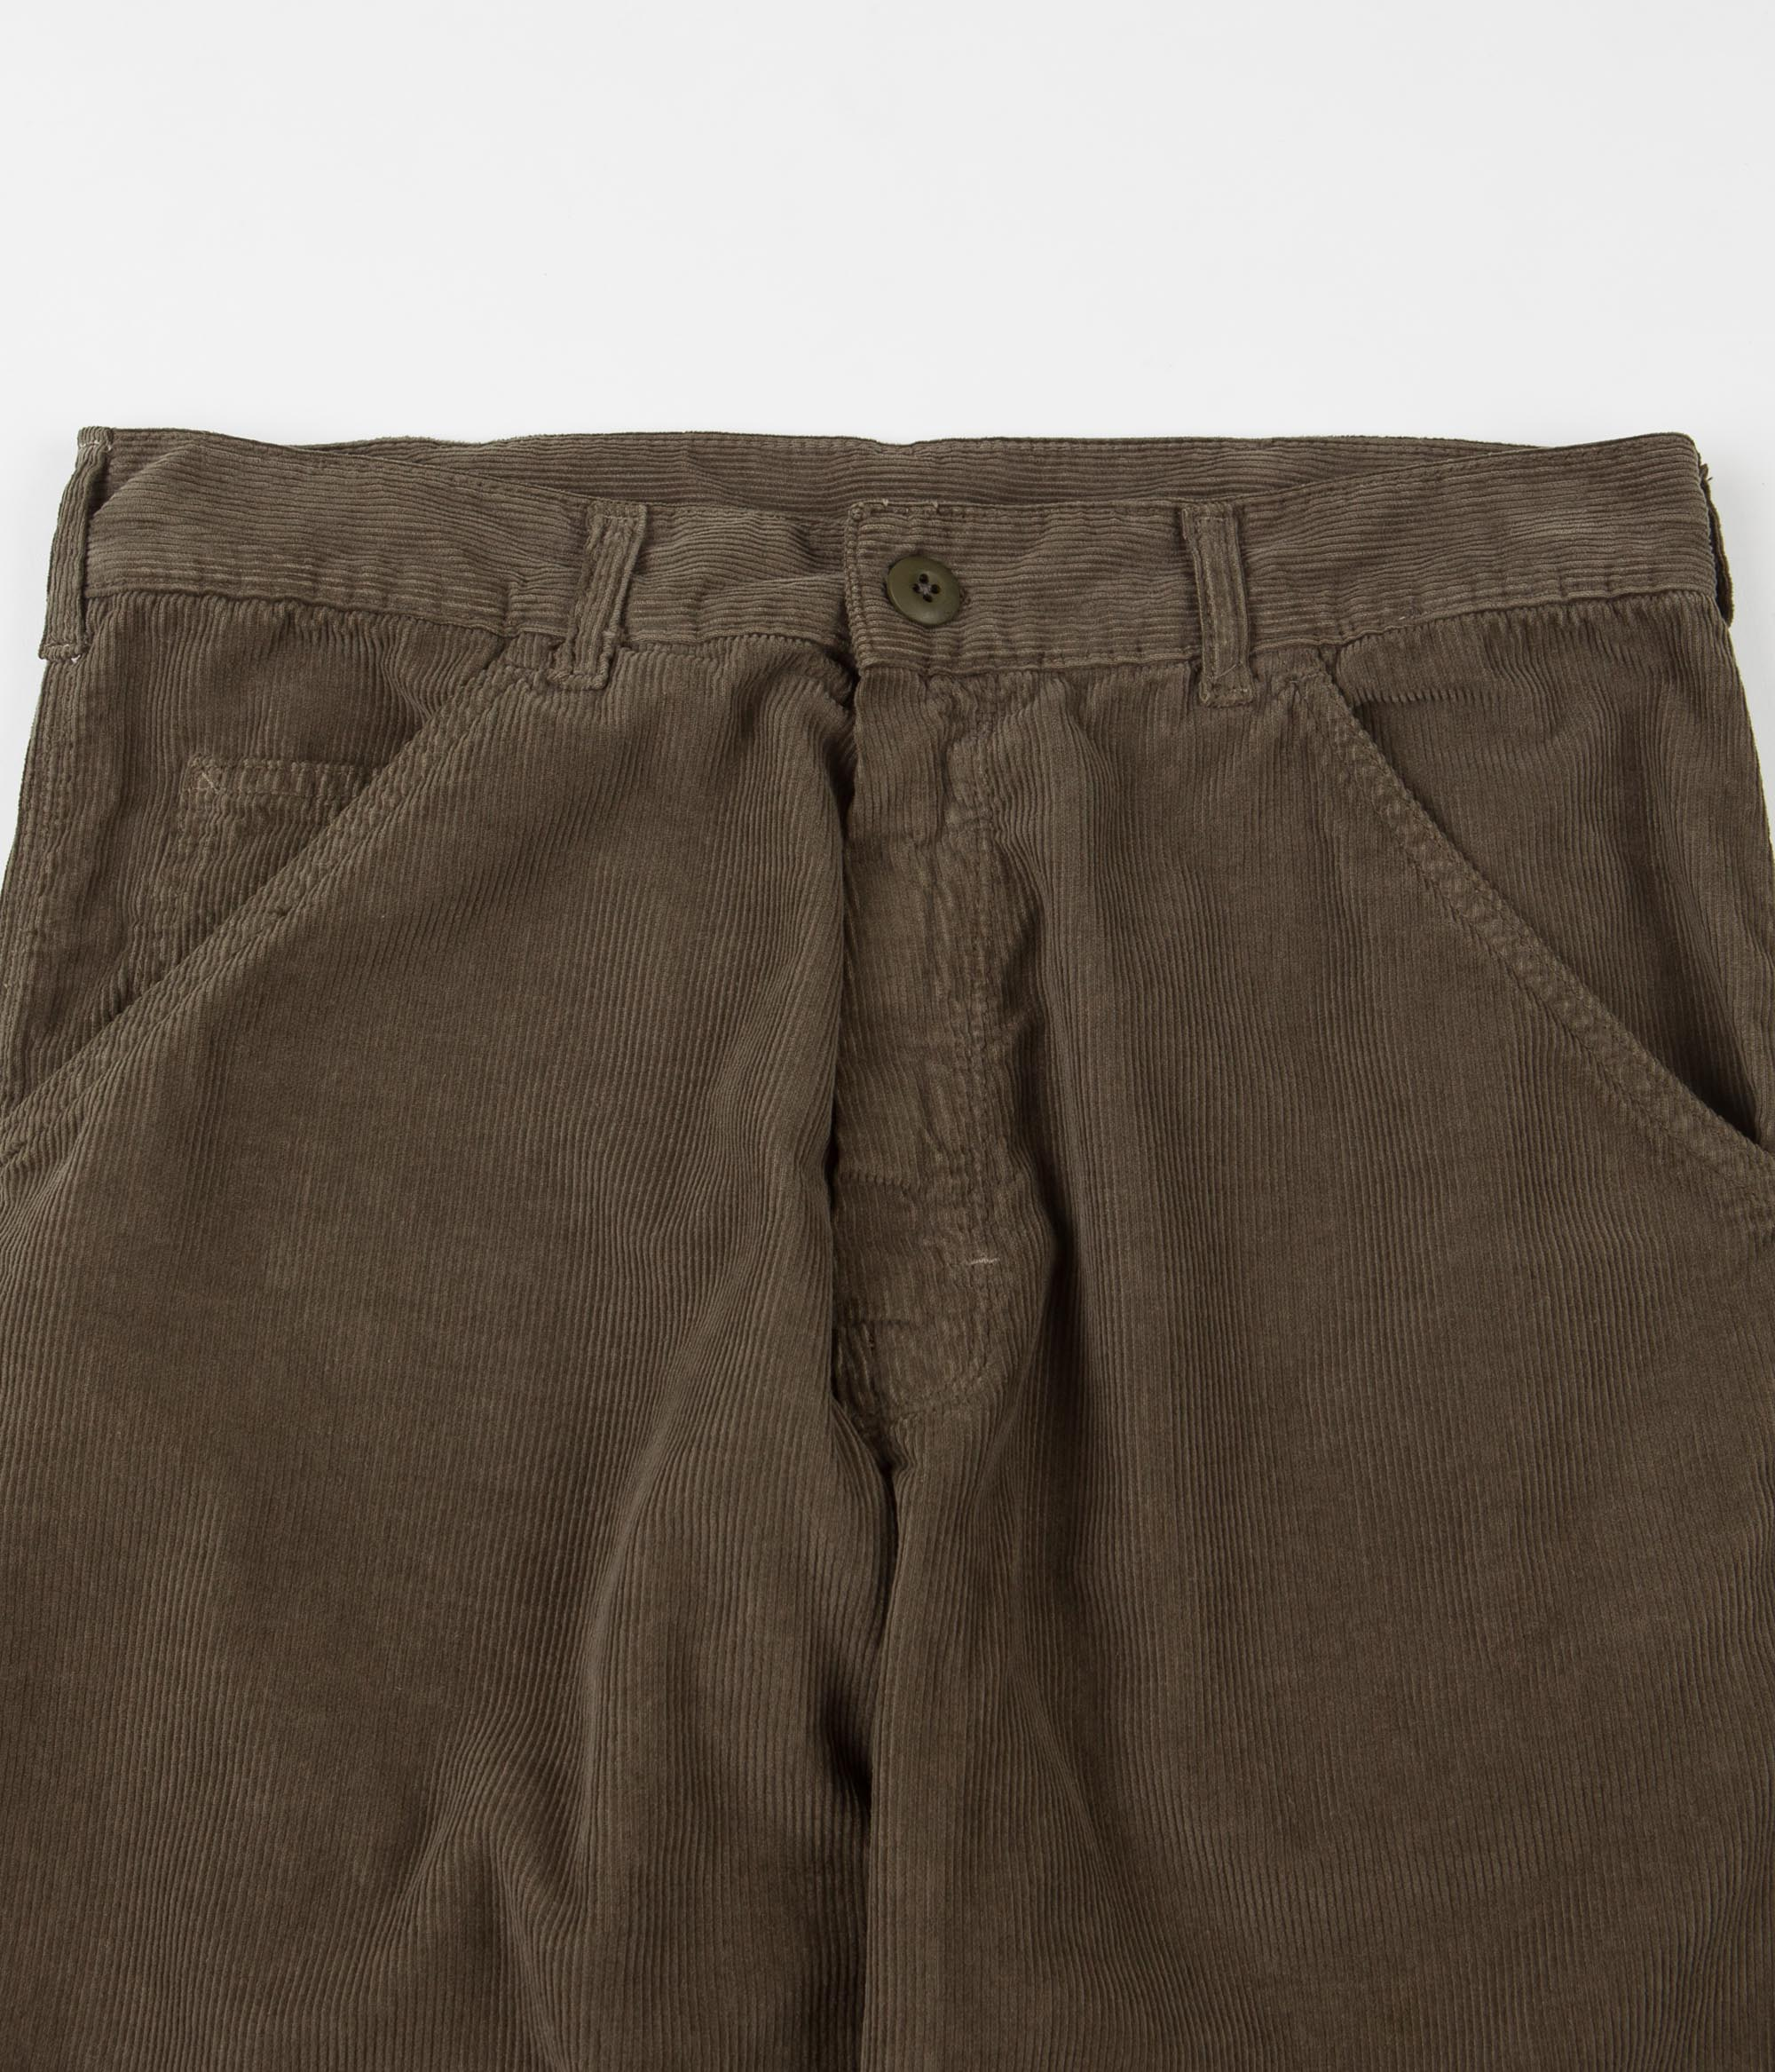 Stan Ray 80's Cord Painter Pants - Olive Cord